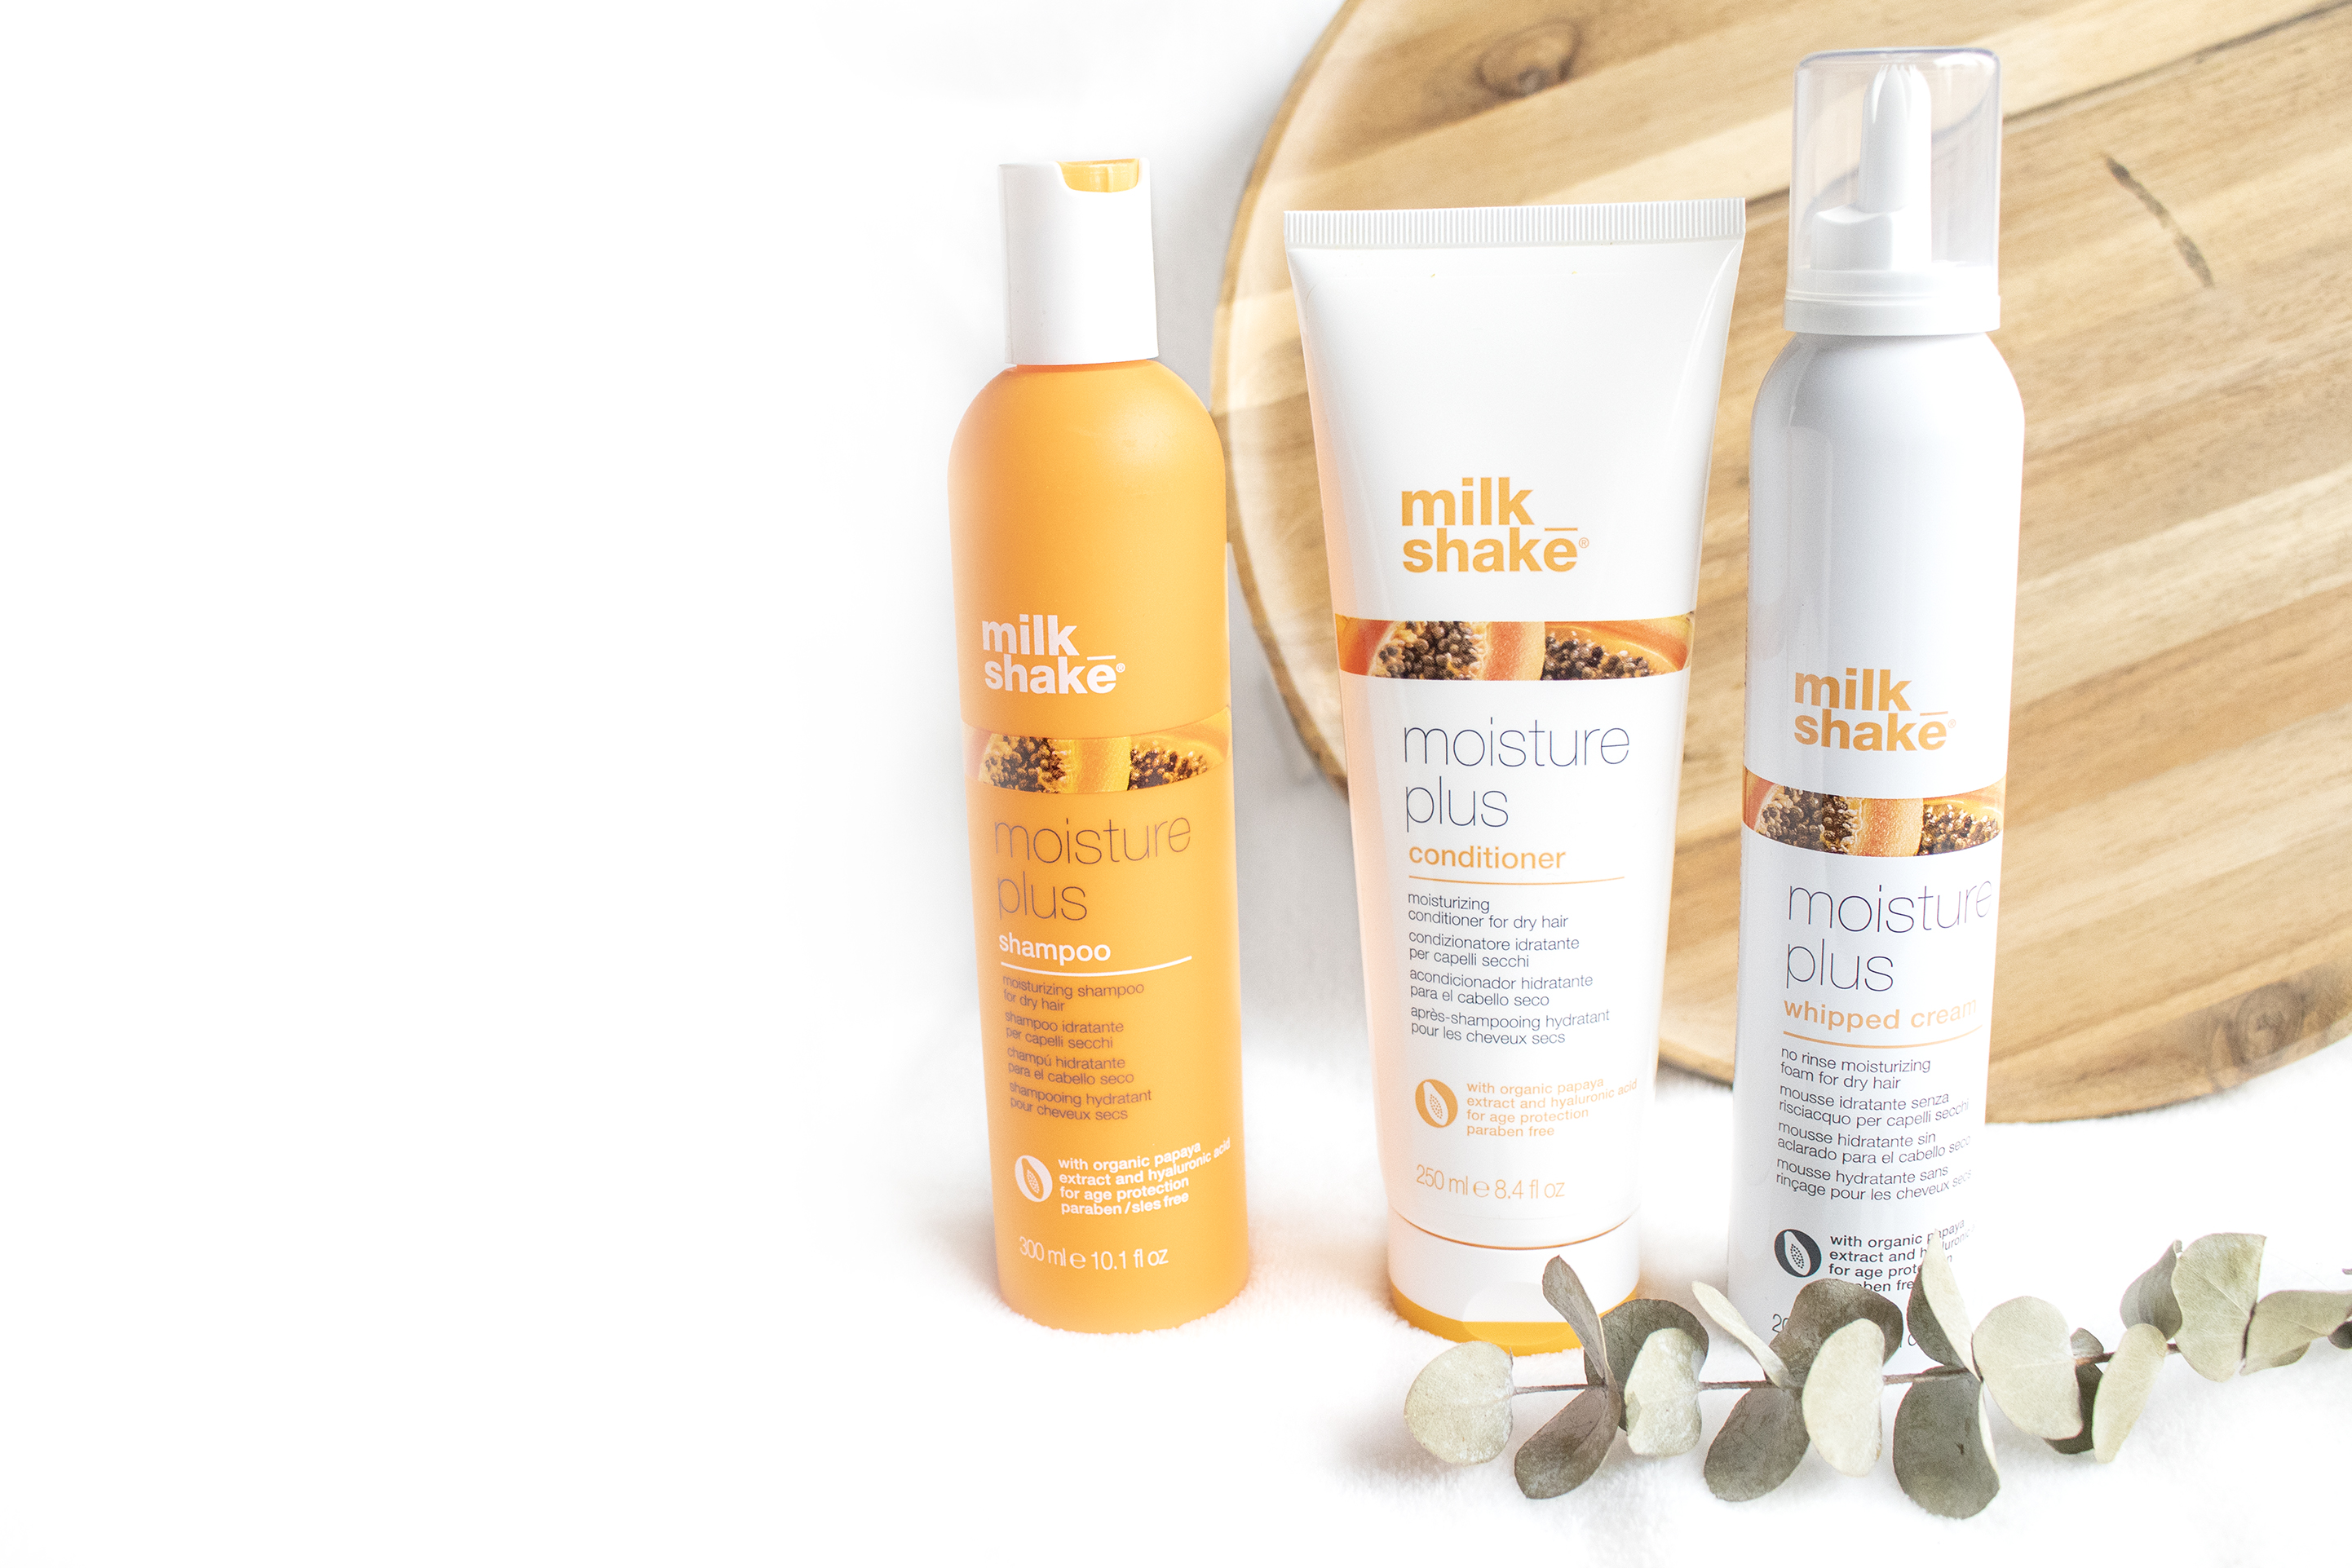 moisture plus milk shake haarproducten